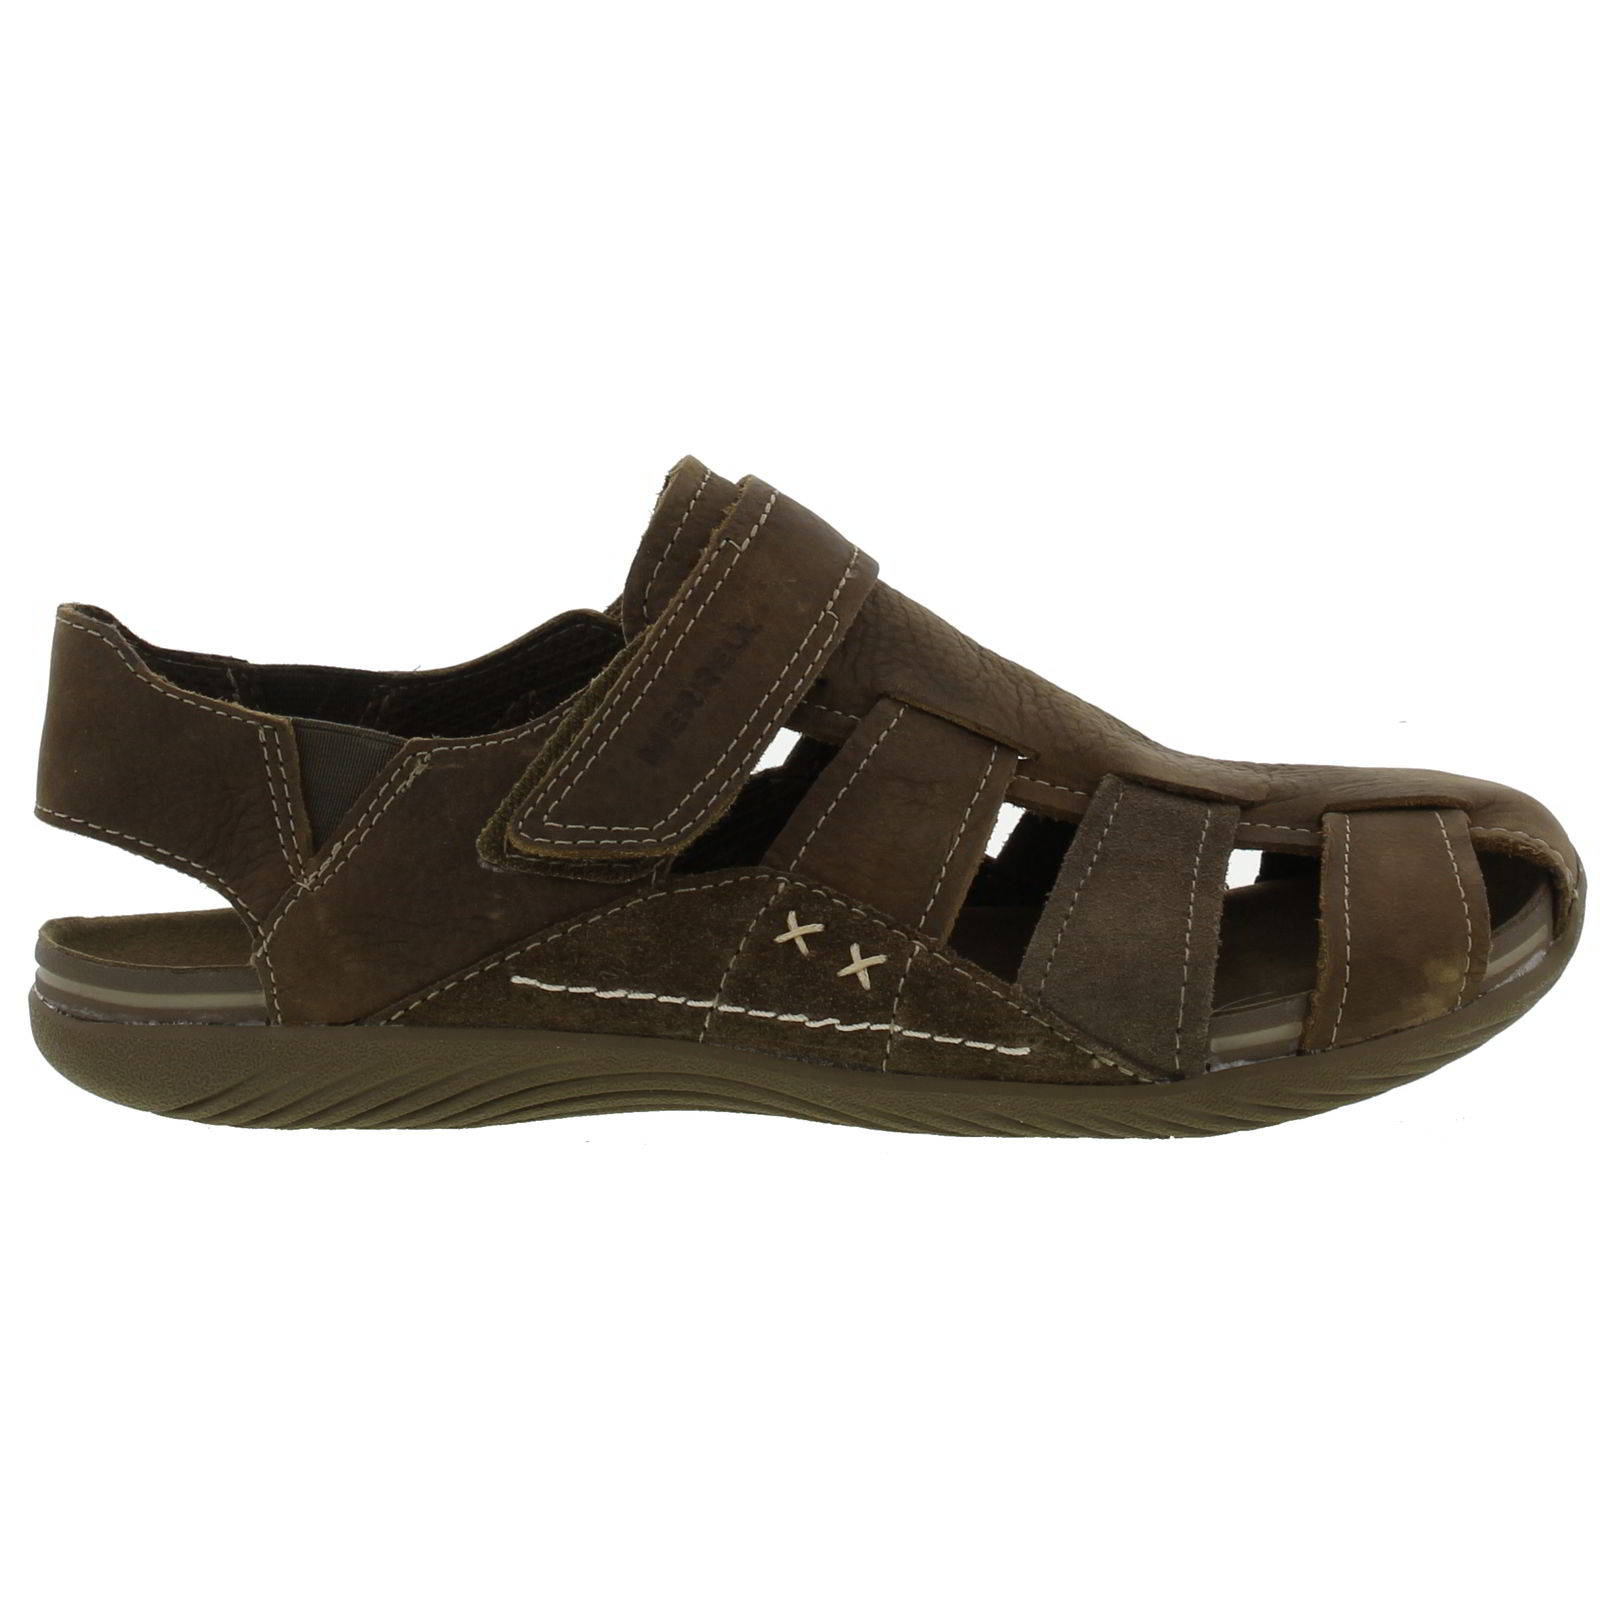 Adidas Shoes Women Brown Suede Leather Velcro